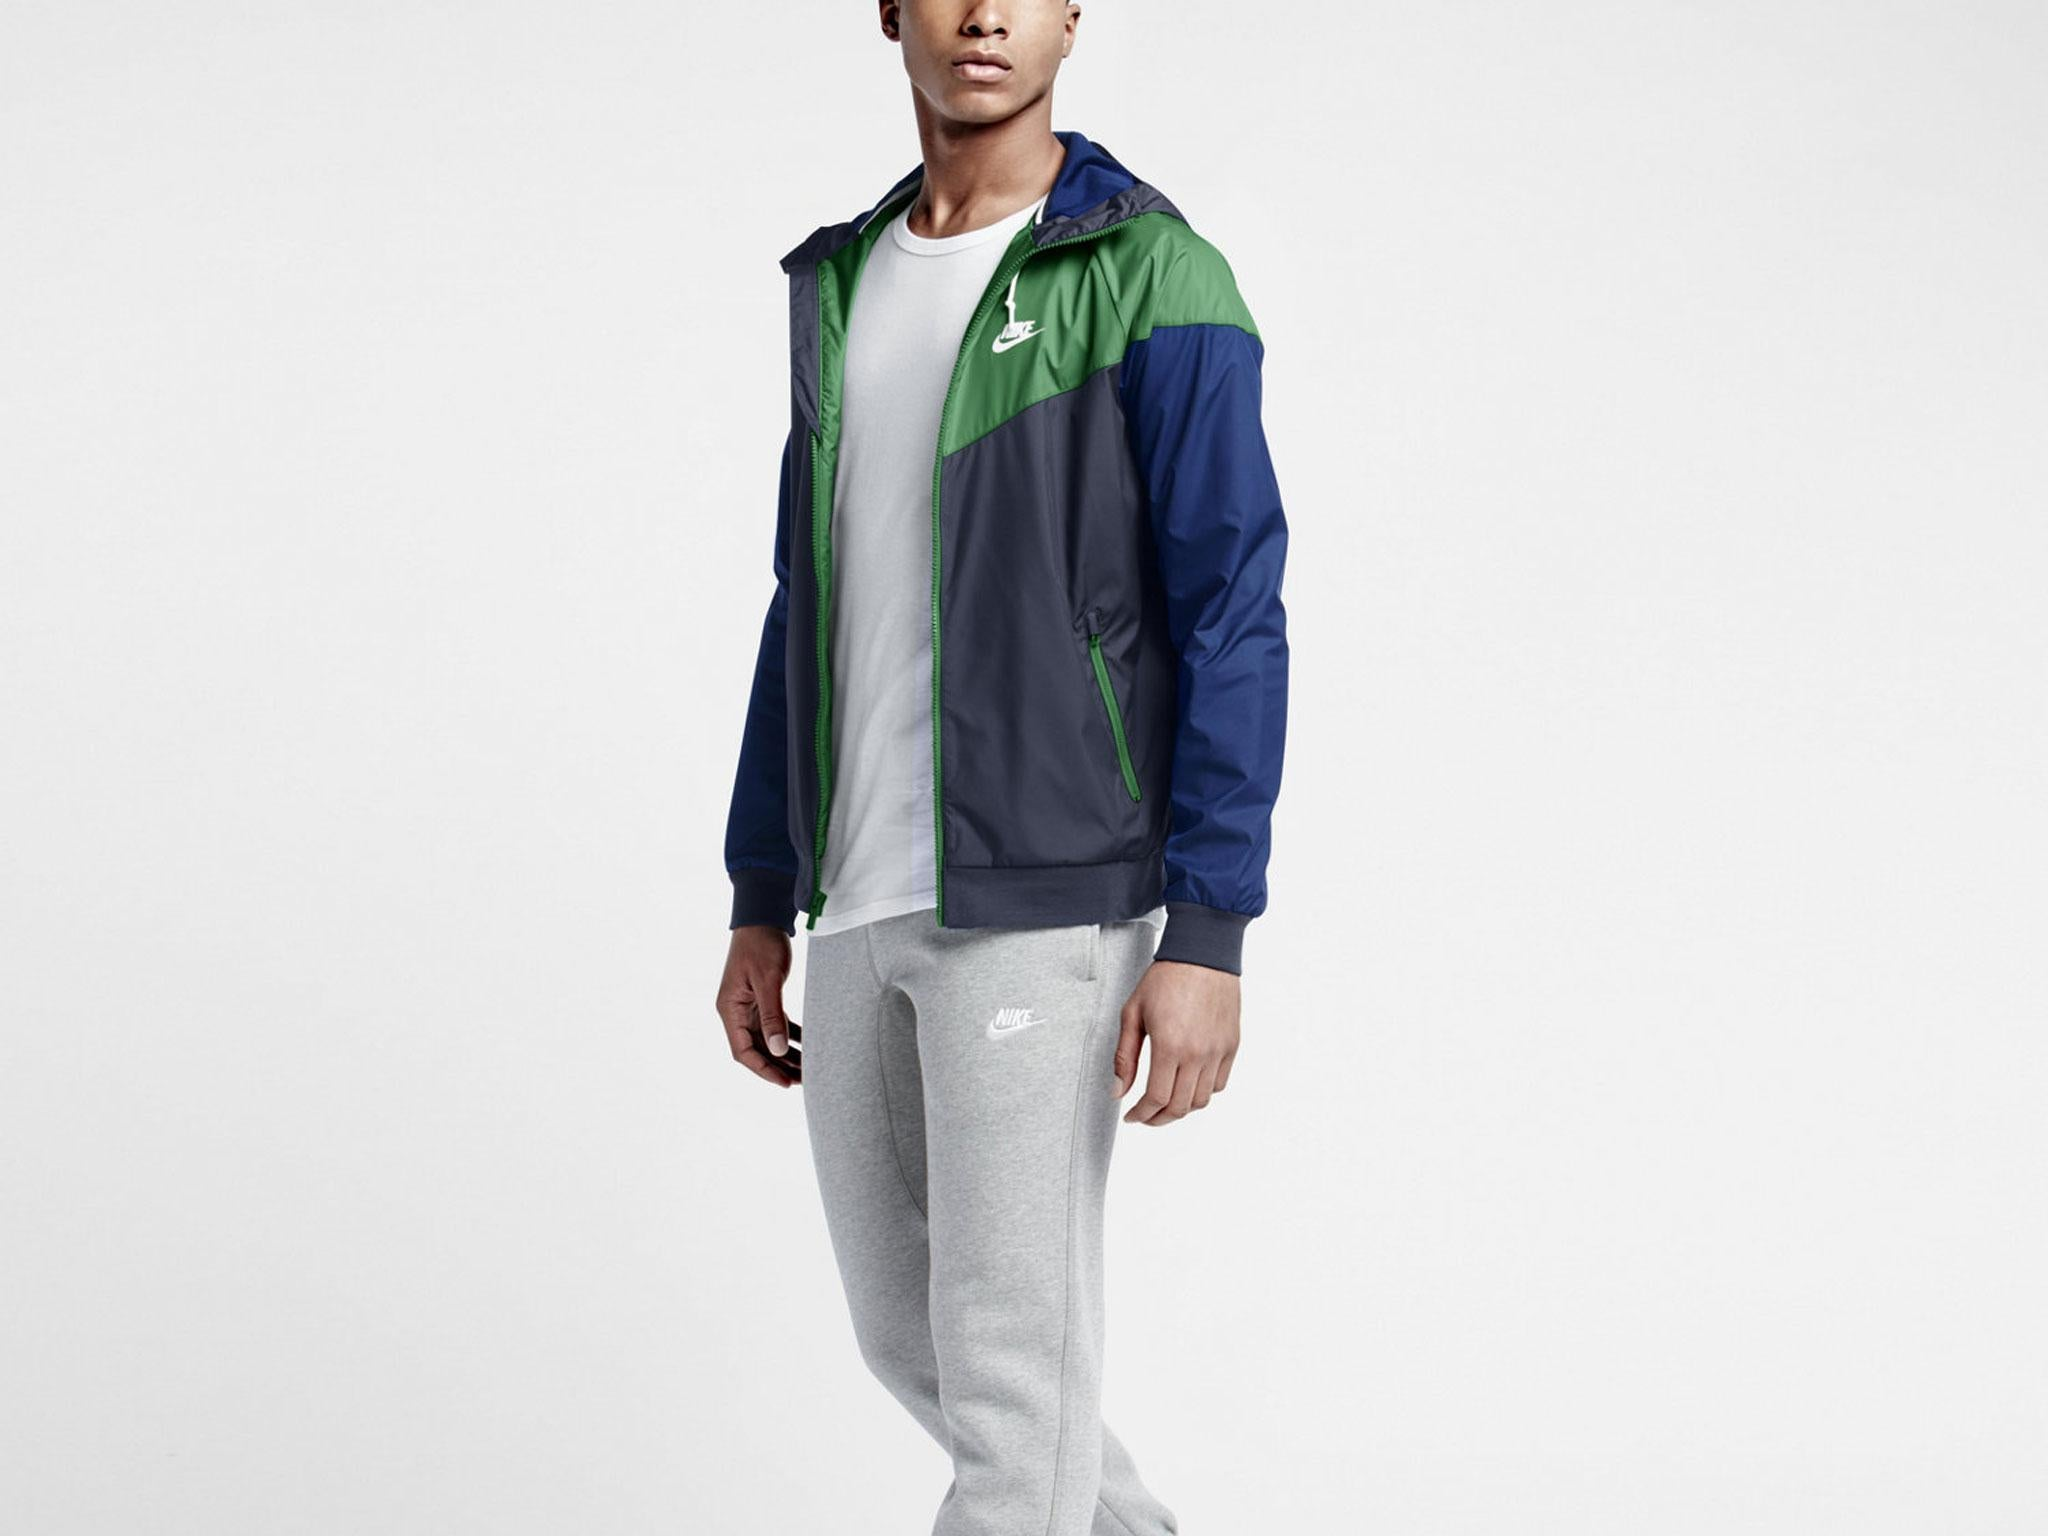 10 best tracksuits